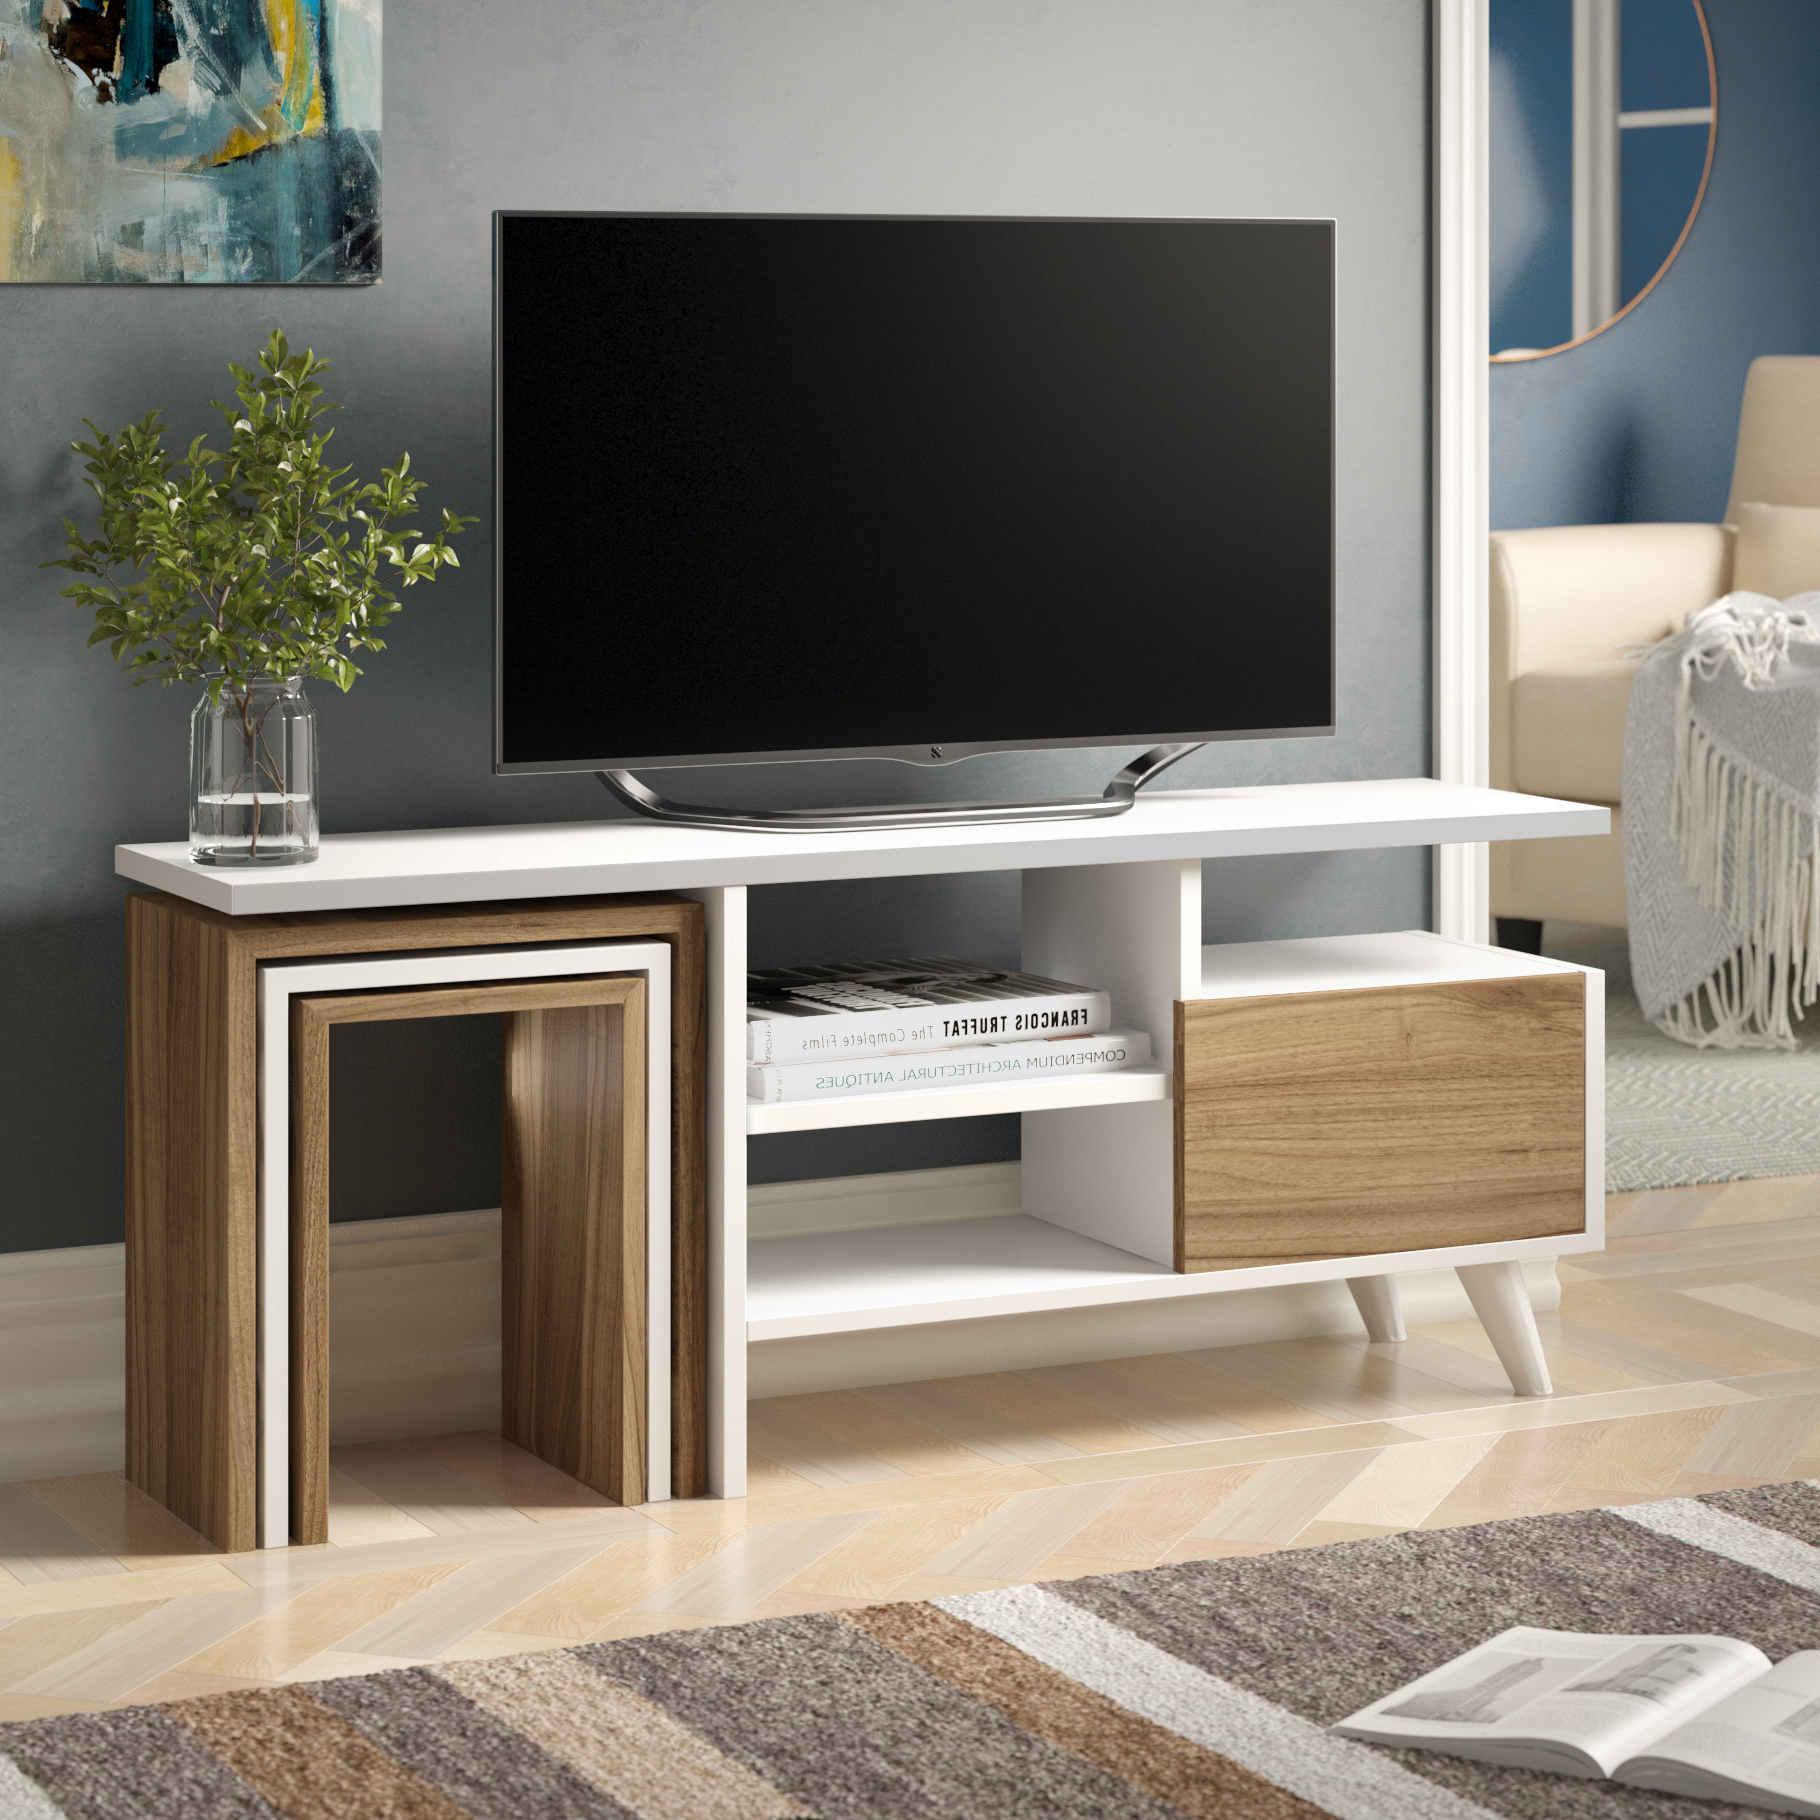 Tv Stand With Side Tables | Wayfair.co (View 2 of 20)